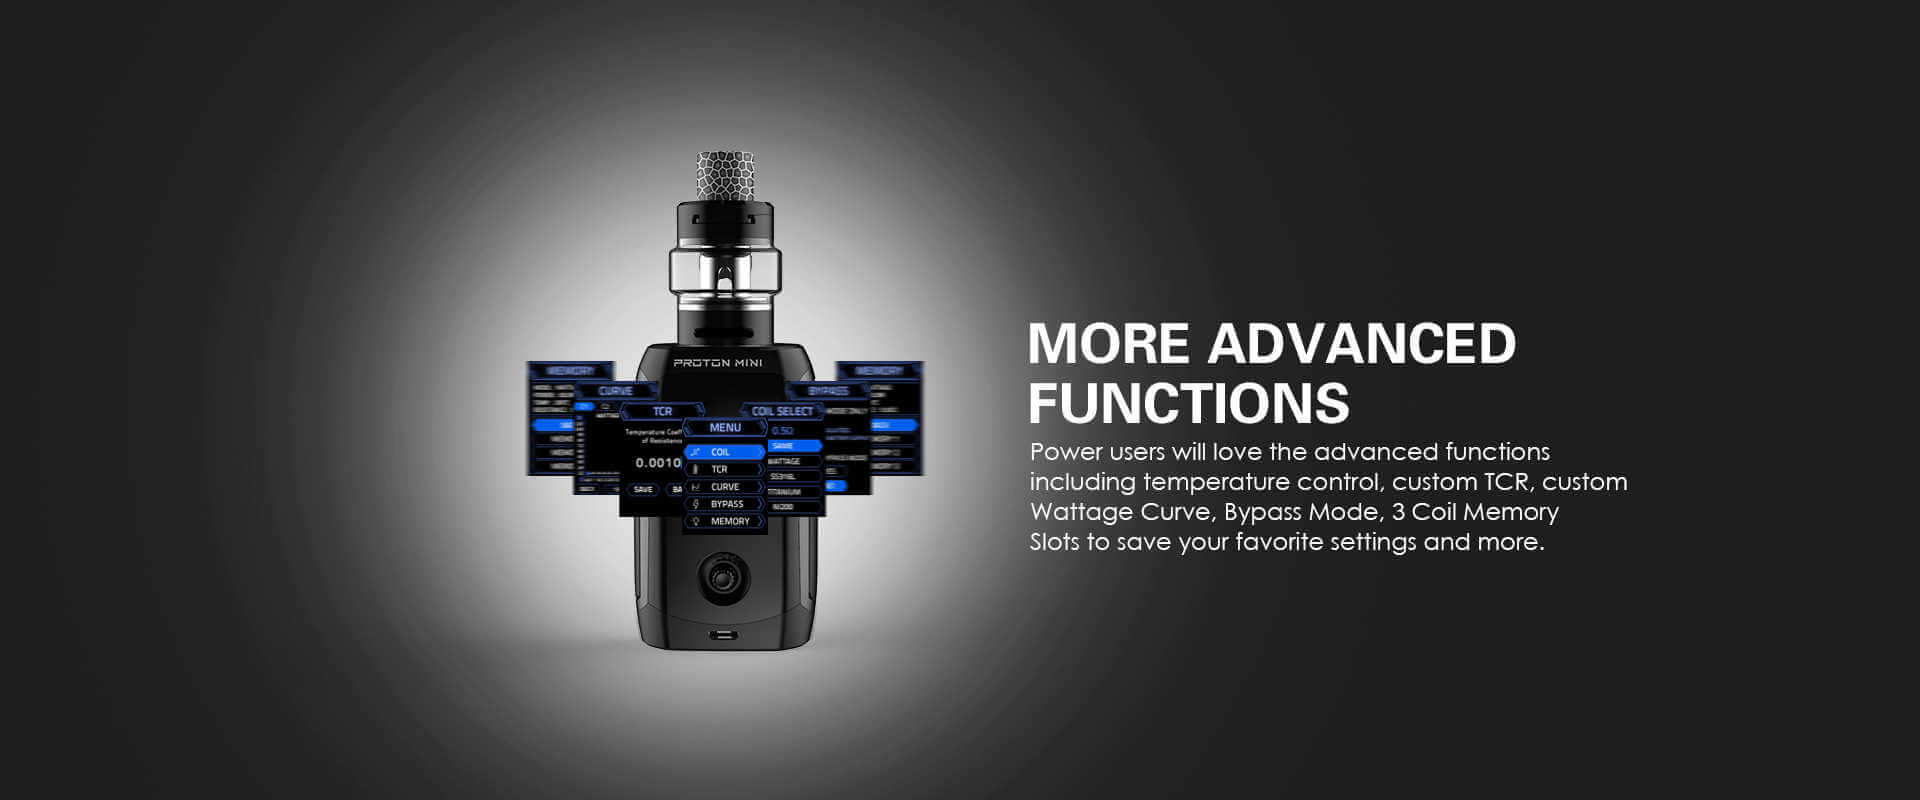 Advanced functions equipped in the Proton Mini Mod